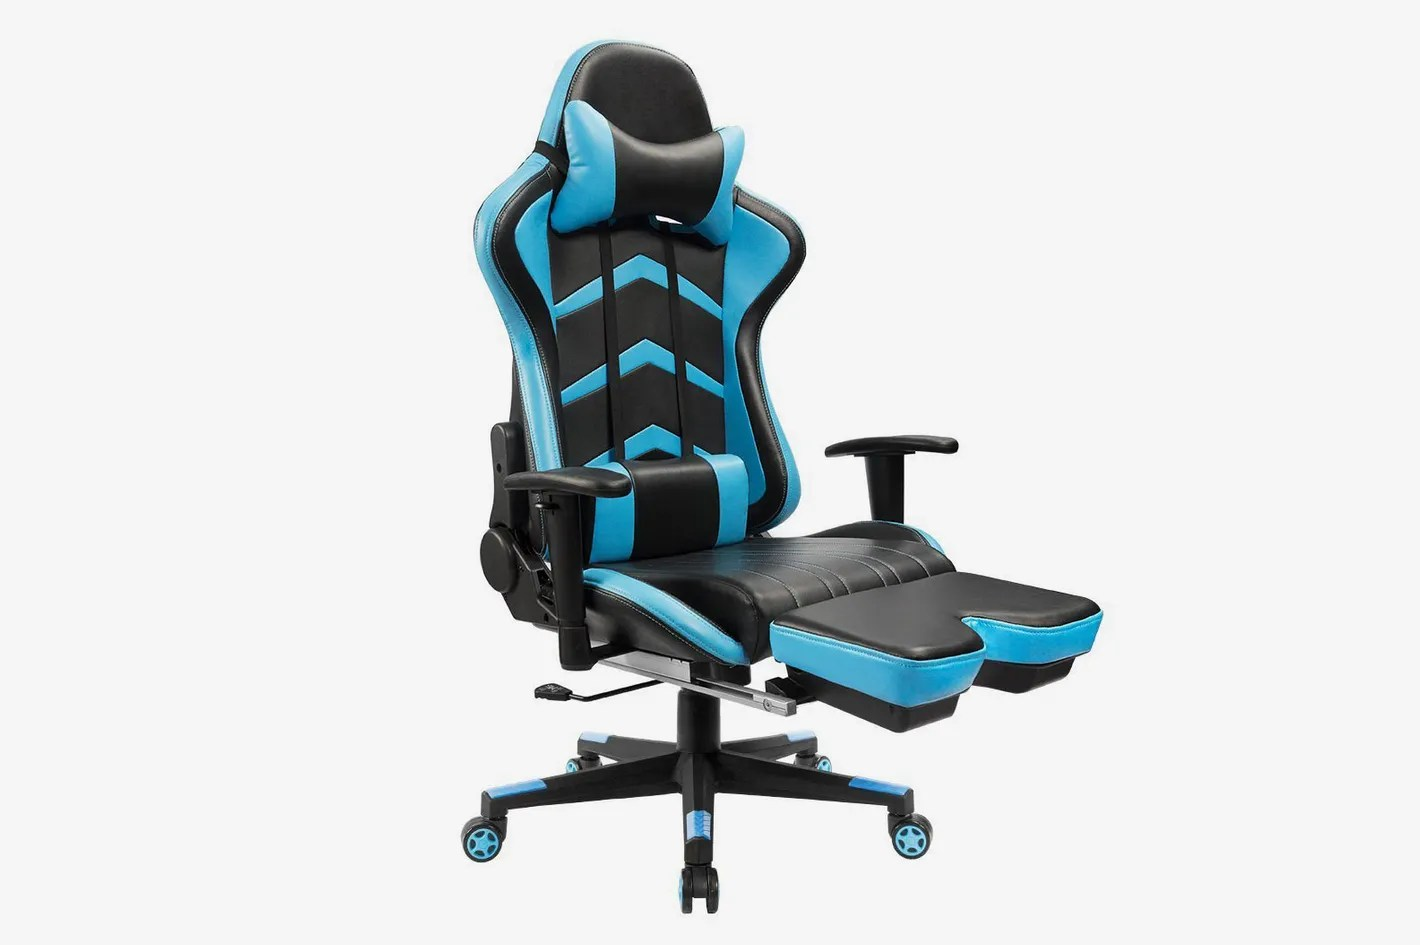 best gaming computer chairs raynor eurotech ergohuman mesh mid back task chair black 12 2018 furmax with footrest